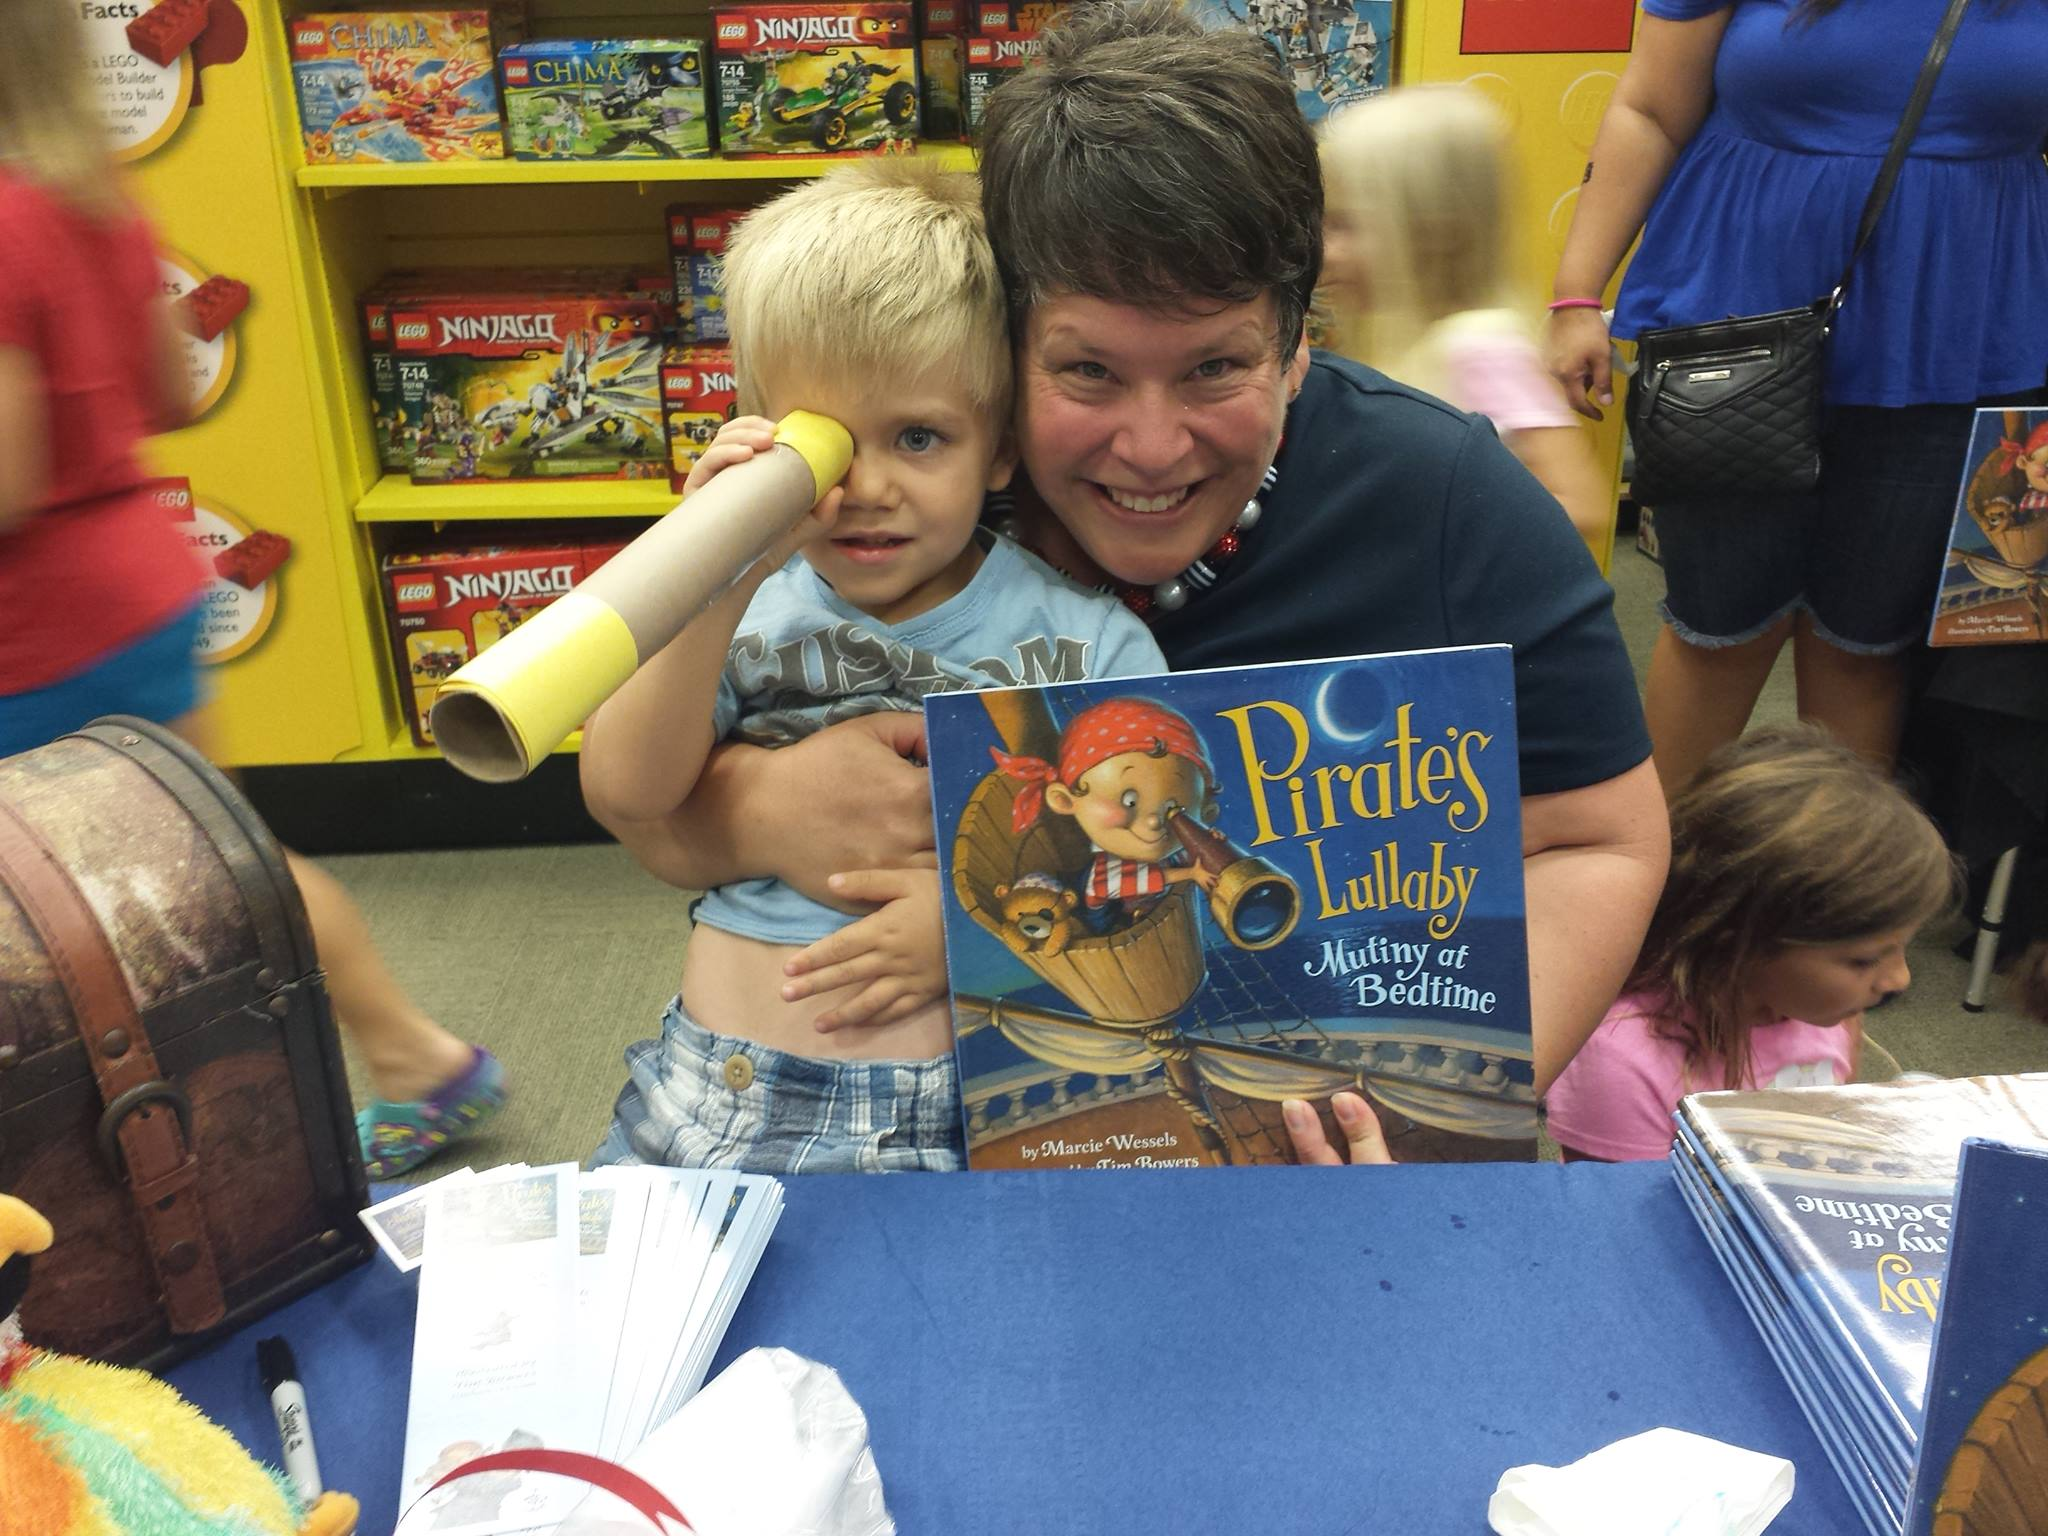 Alicia Lindbergs Son and I at Book Launch Party.jpg